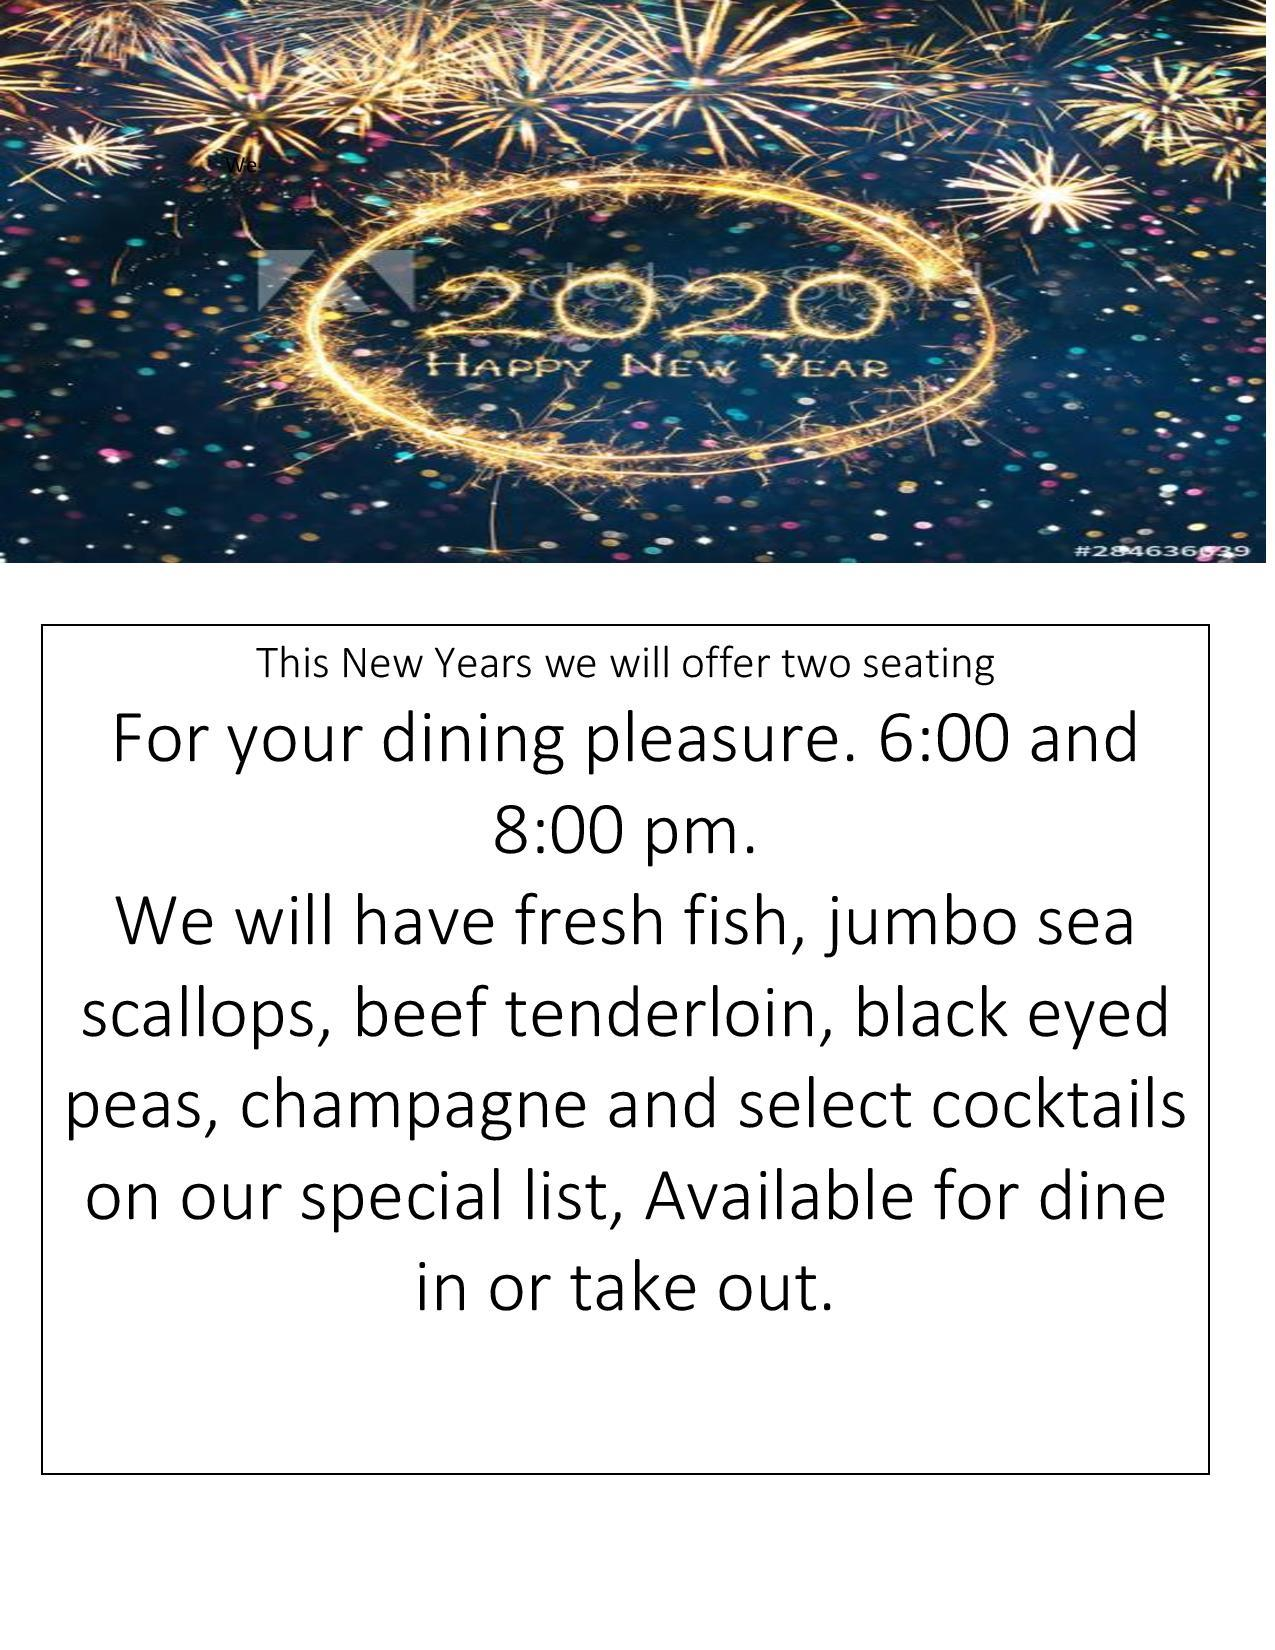 this new year's we will offer two seatings for dinner at 6 and 8pm